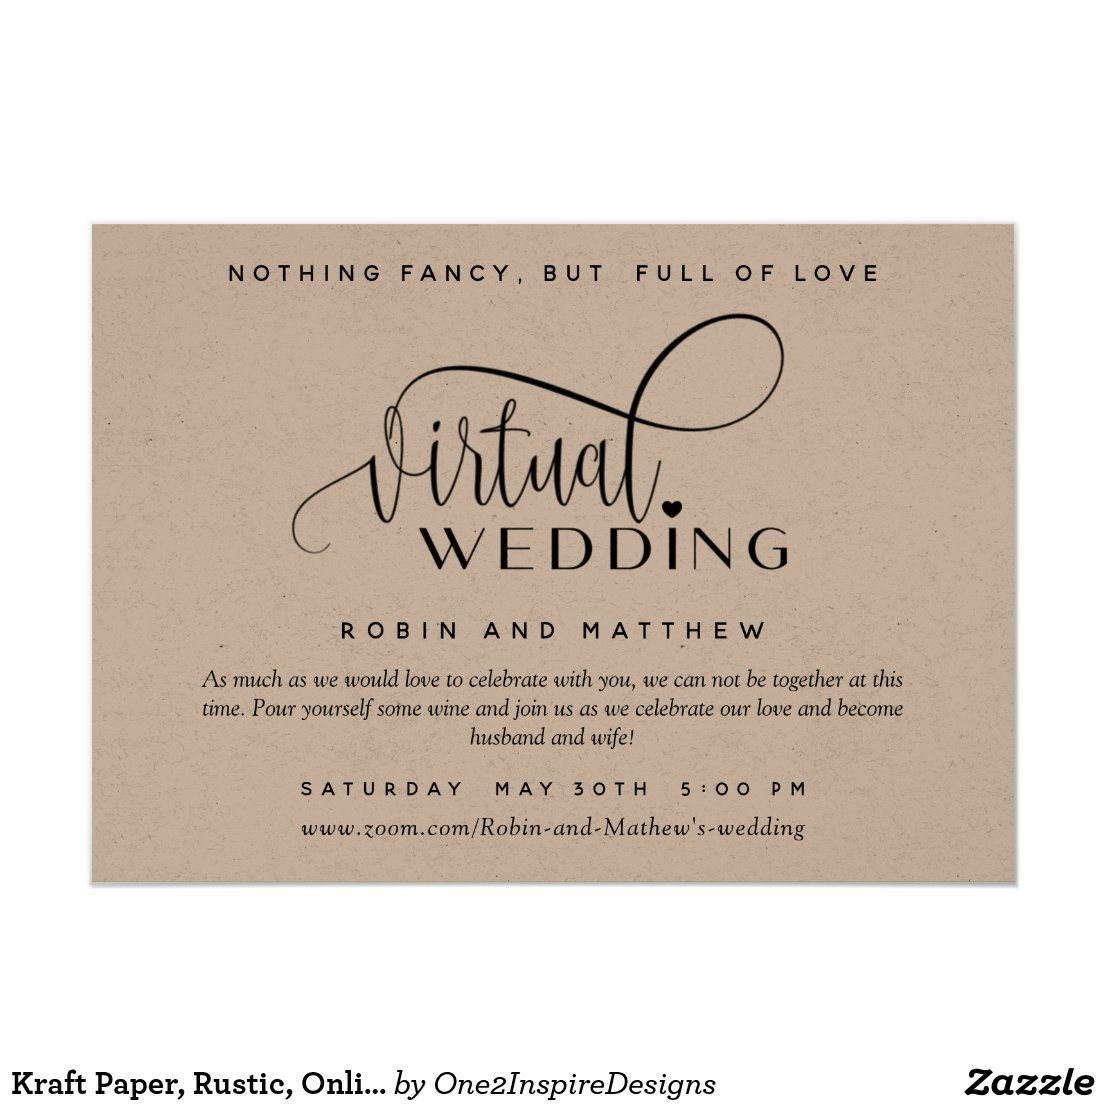 Kraft Paper Rustic Online Virtual Wedding Invitation Zazzle Com In 2020 Wedding Invitations Digital Weddings Invitations